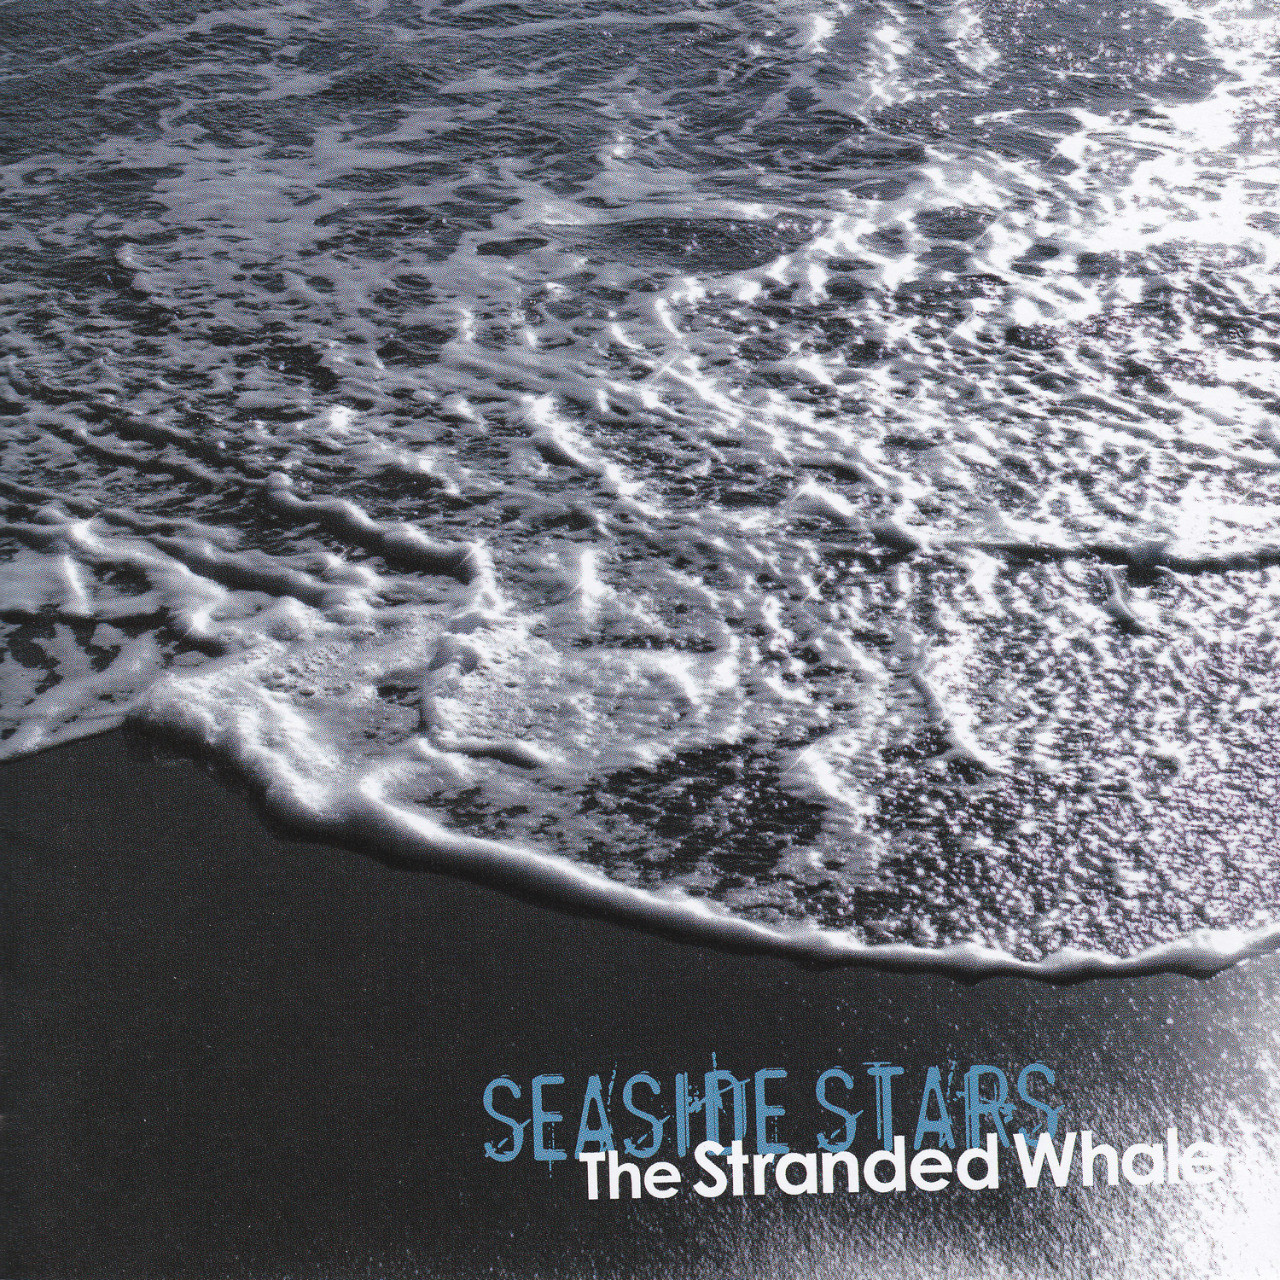 Seaside Stars - The Stranded Whale